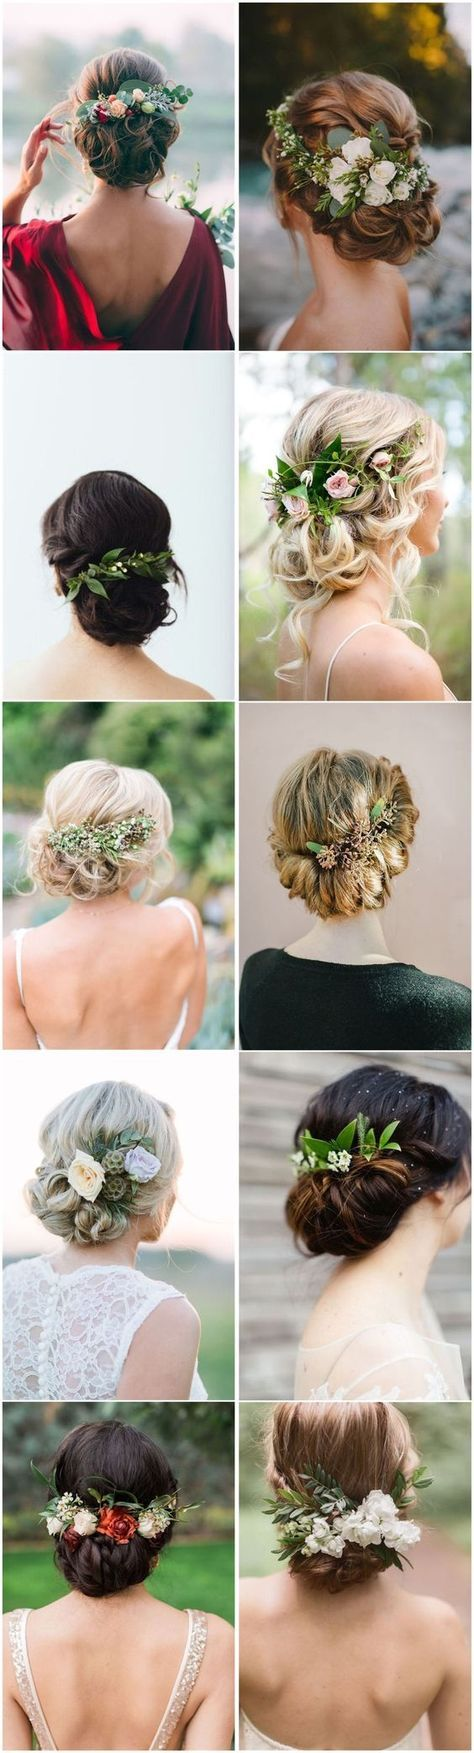 18 Wedding Updo Hairstyles with Greenery Decorations #headbandhairstyles